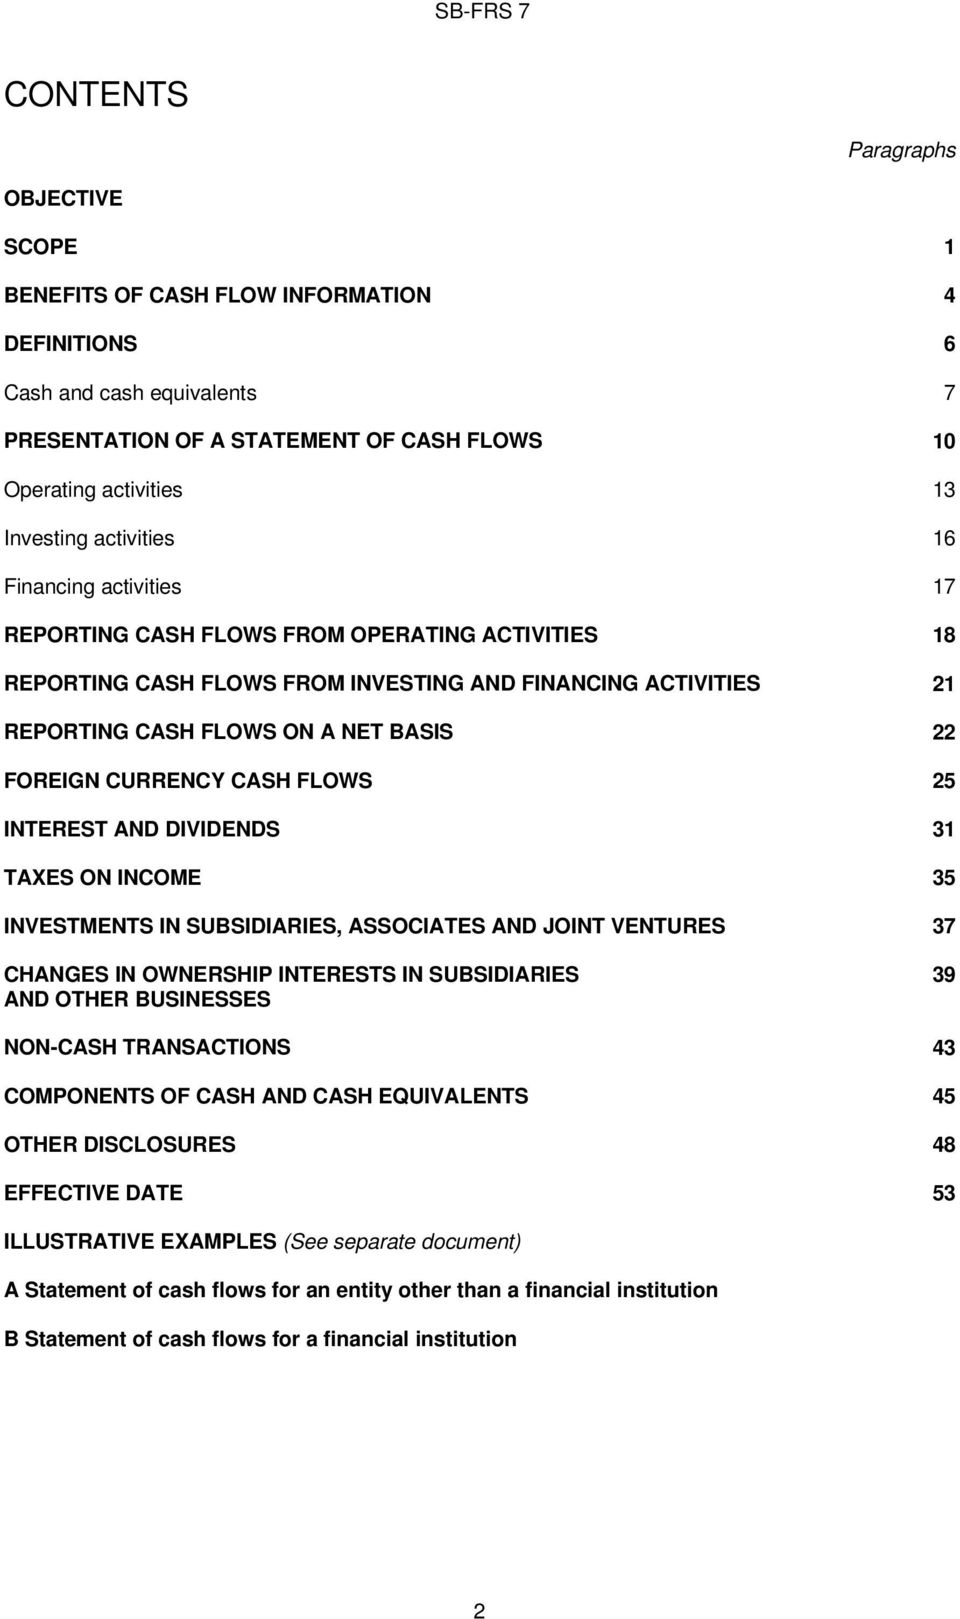 INTEREST AND DIVIDENDS TAXES ON INCOME INVESTMENTS IN SUBSIDIARIES, ASSOCIATES AND JOINT VENTURES CHANGES IN OWNERSHIP INTERESTS IN SUBSIDIARIES AND OTHER BUSINESSES NON-CASH TRANSACTIONS COMPONENTS